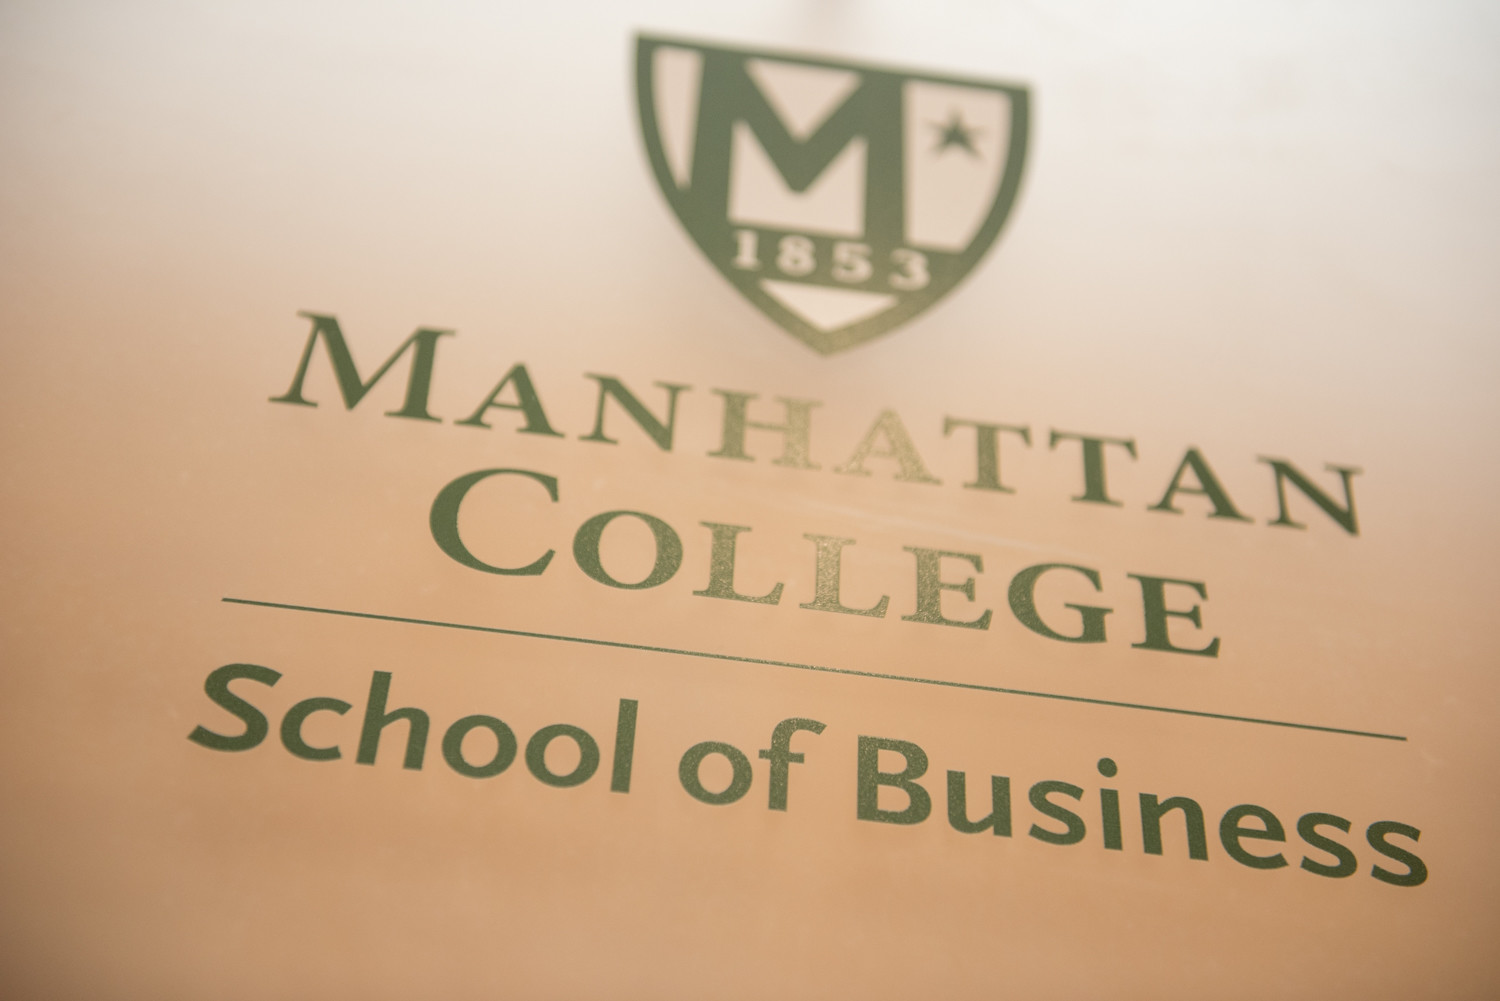 Manhattan College's School of Business will be renamed The O'Malley School of Business, thanks to a $25 million gift to the school by Class of 1963 alum Thomas O'Malley.